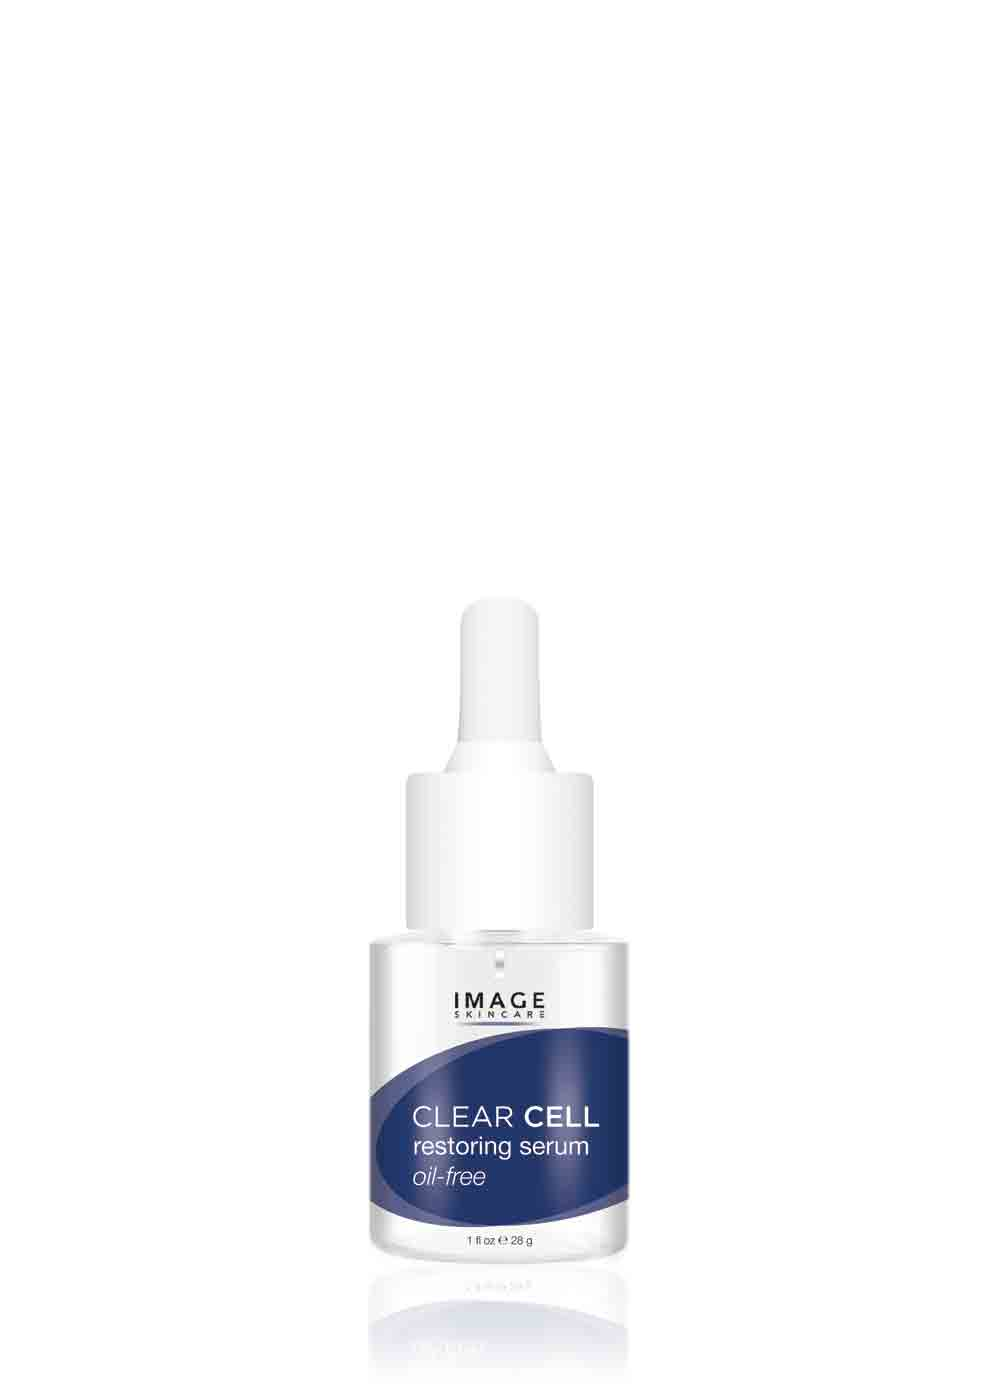 Image-clear-cell-restoring-serum.jpg